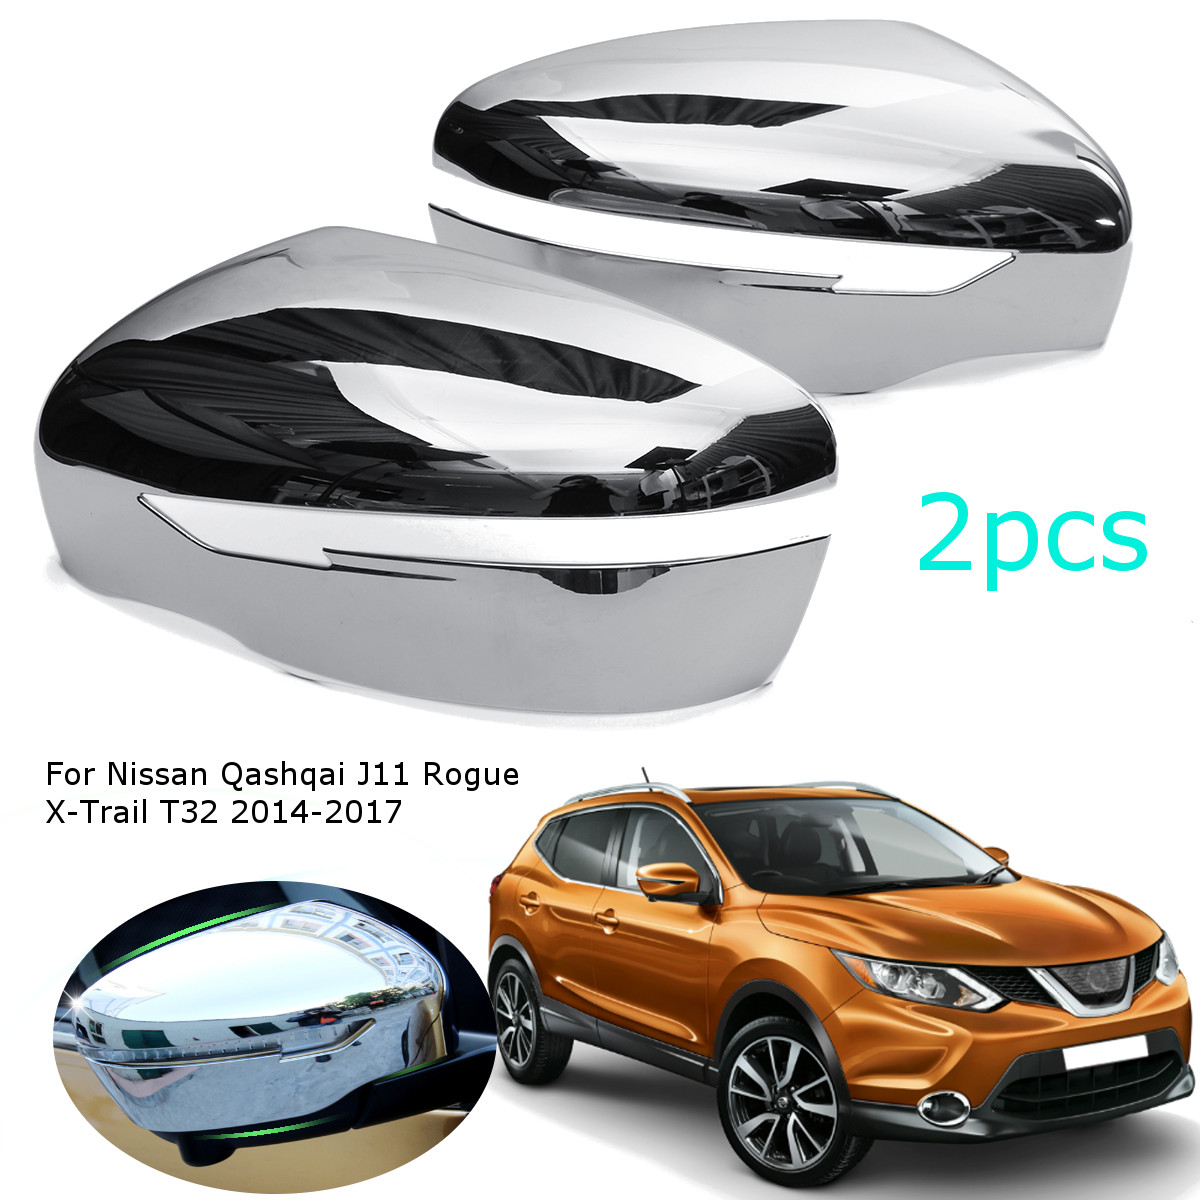 Car Chrome Styling Rearview Mirror for Nissan Qashqai J11 Rogue X-Trail T32 2014 2015 2016 2017